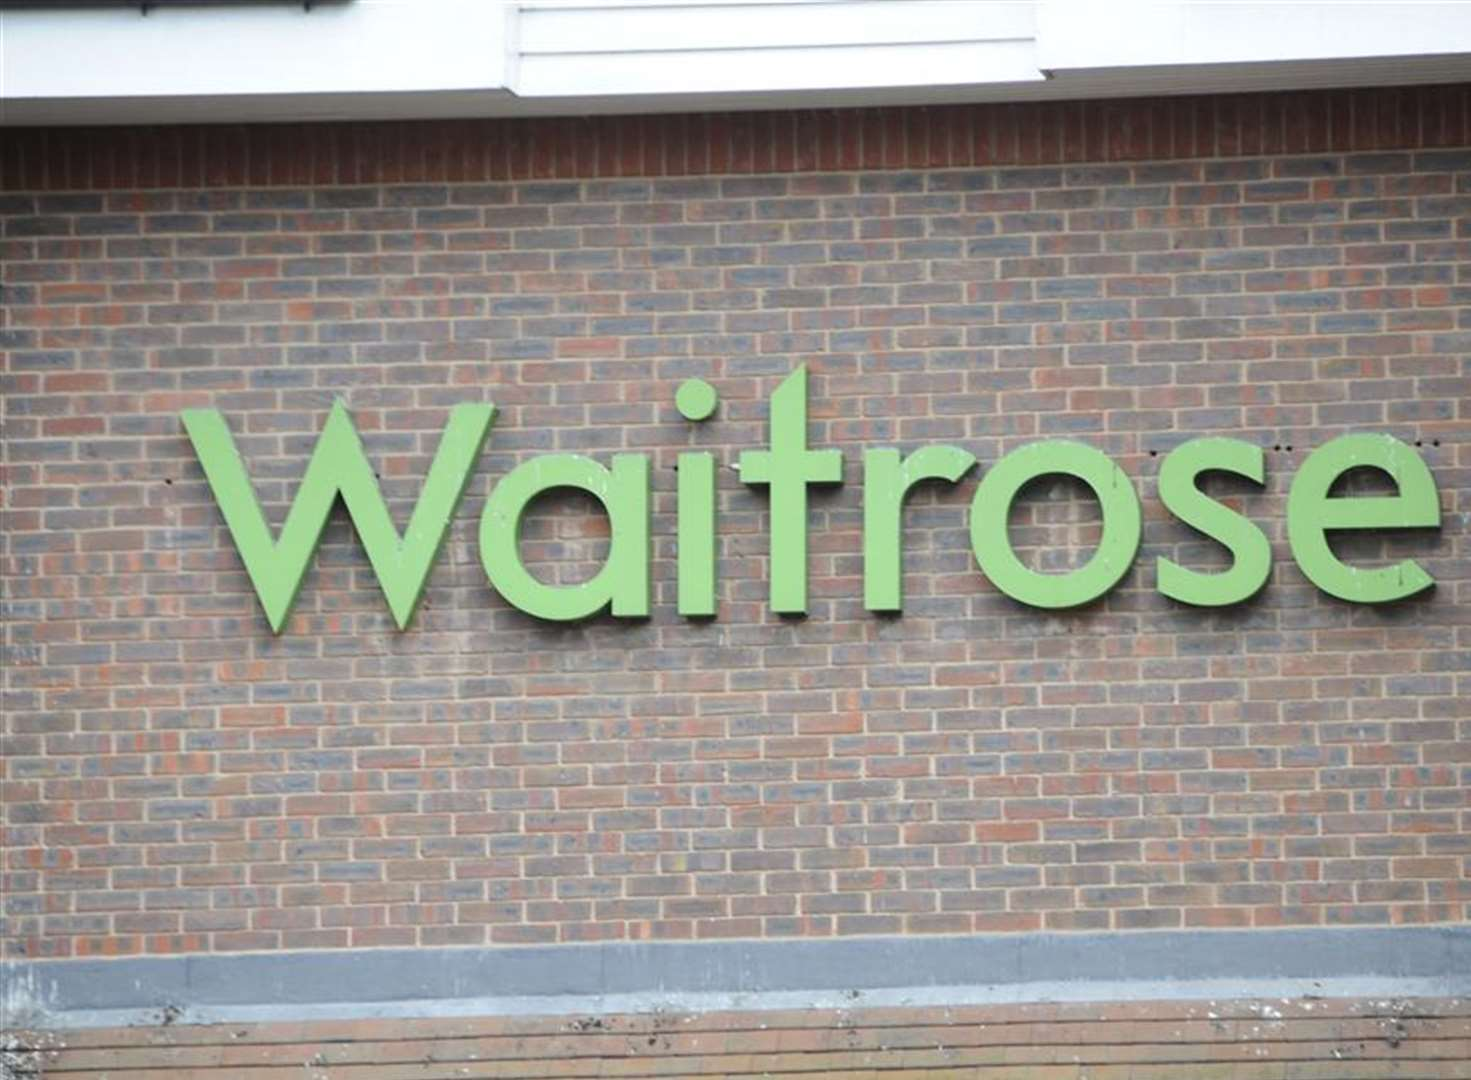 Dozens of jobs at risk as Waitrose set to close failing branch